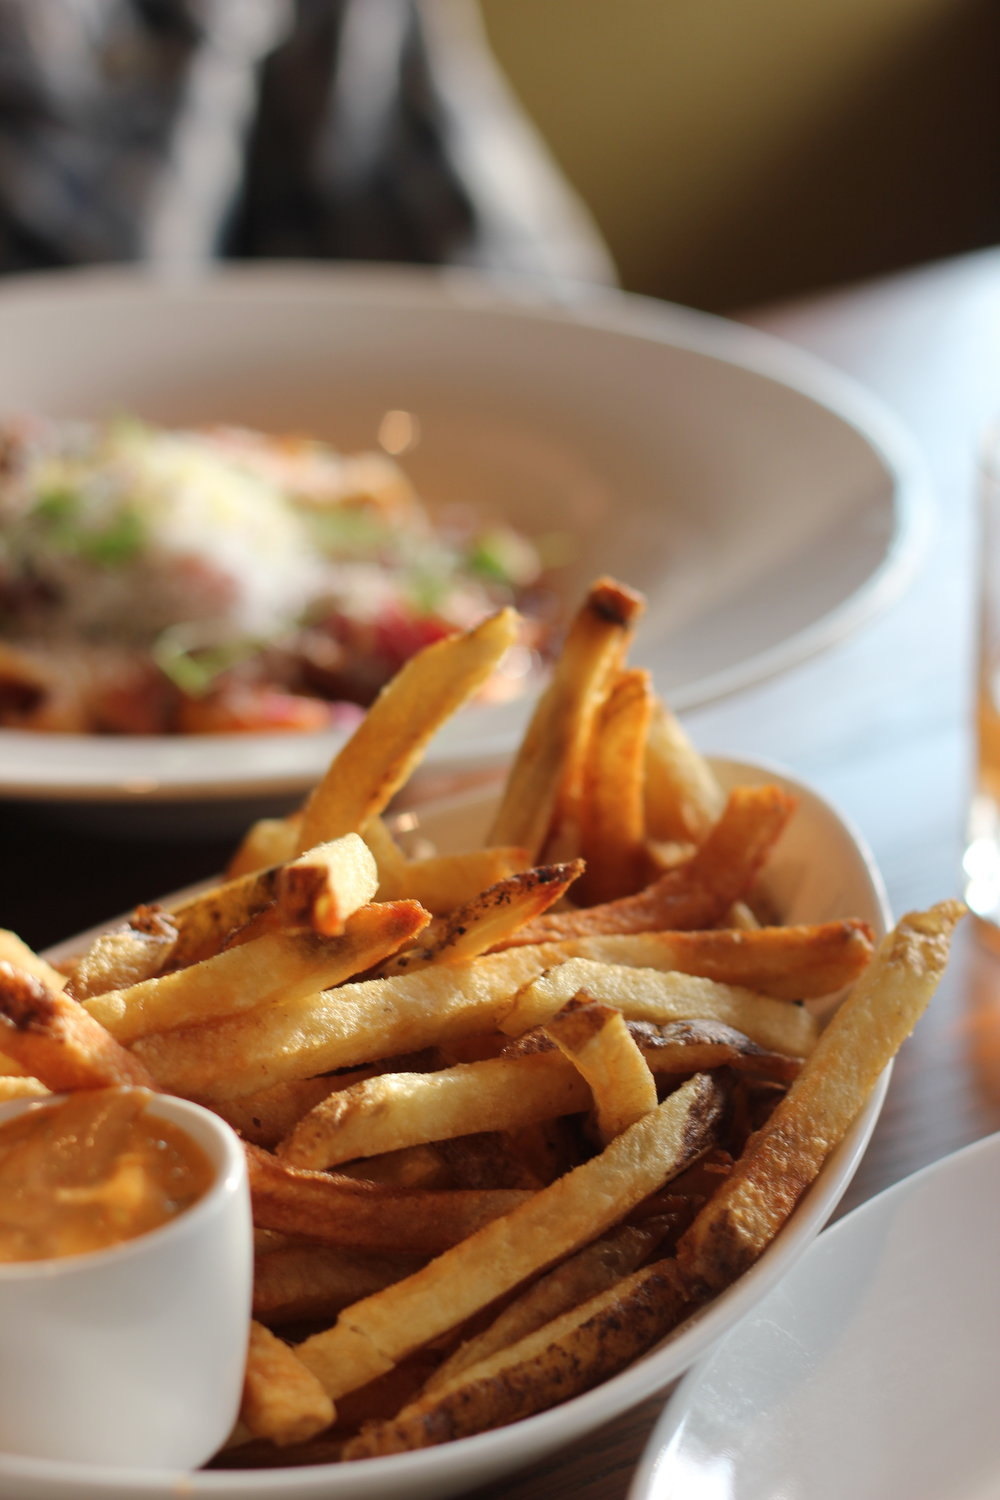 Fries forever and ever AMEN.